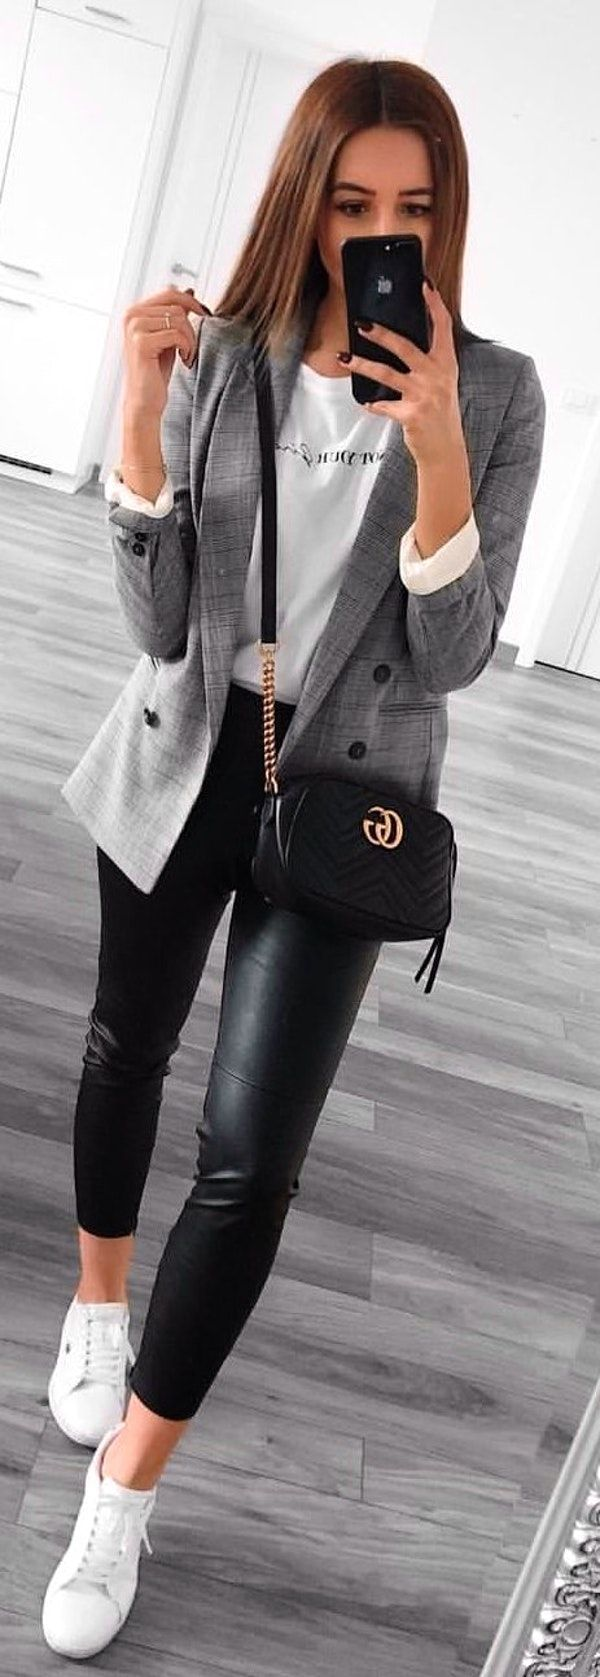 100+ Stylish Outfit Ideas To Finish This Spring Wi…